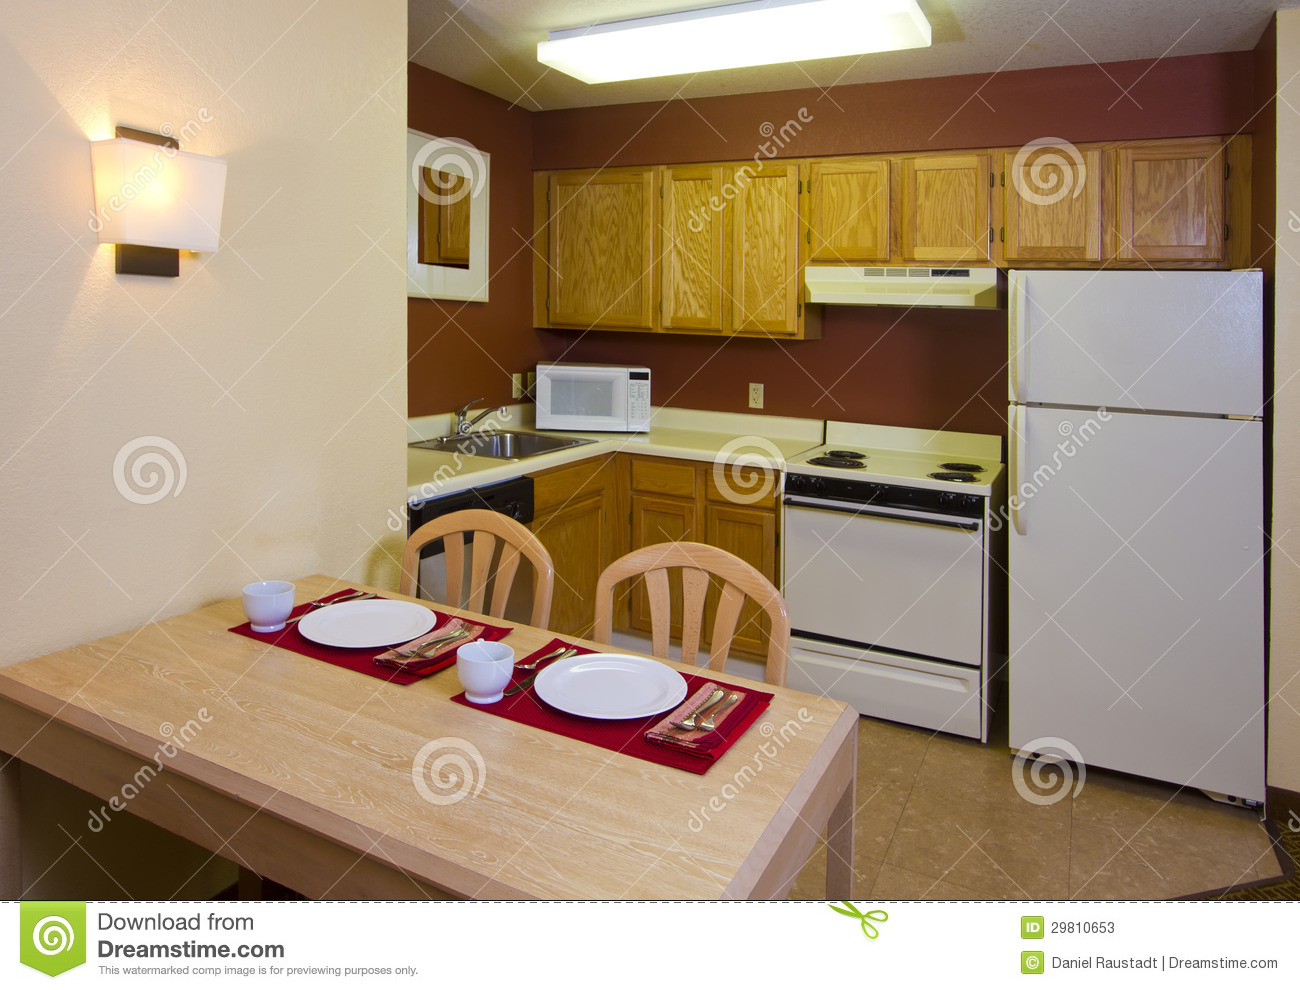 Studio Apartment Kitchen Dining Living Space Stock Photos  Image 29810653